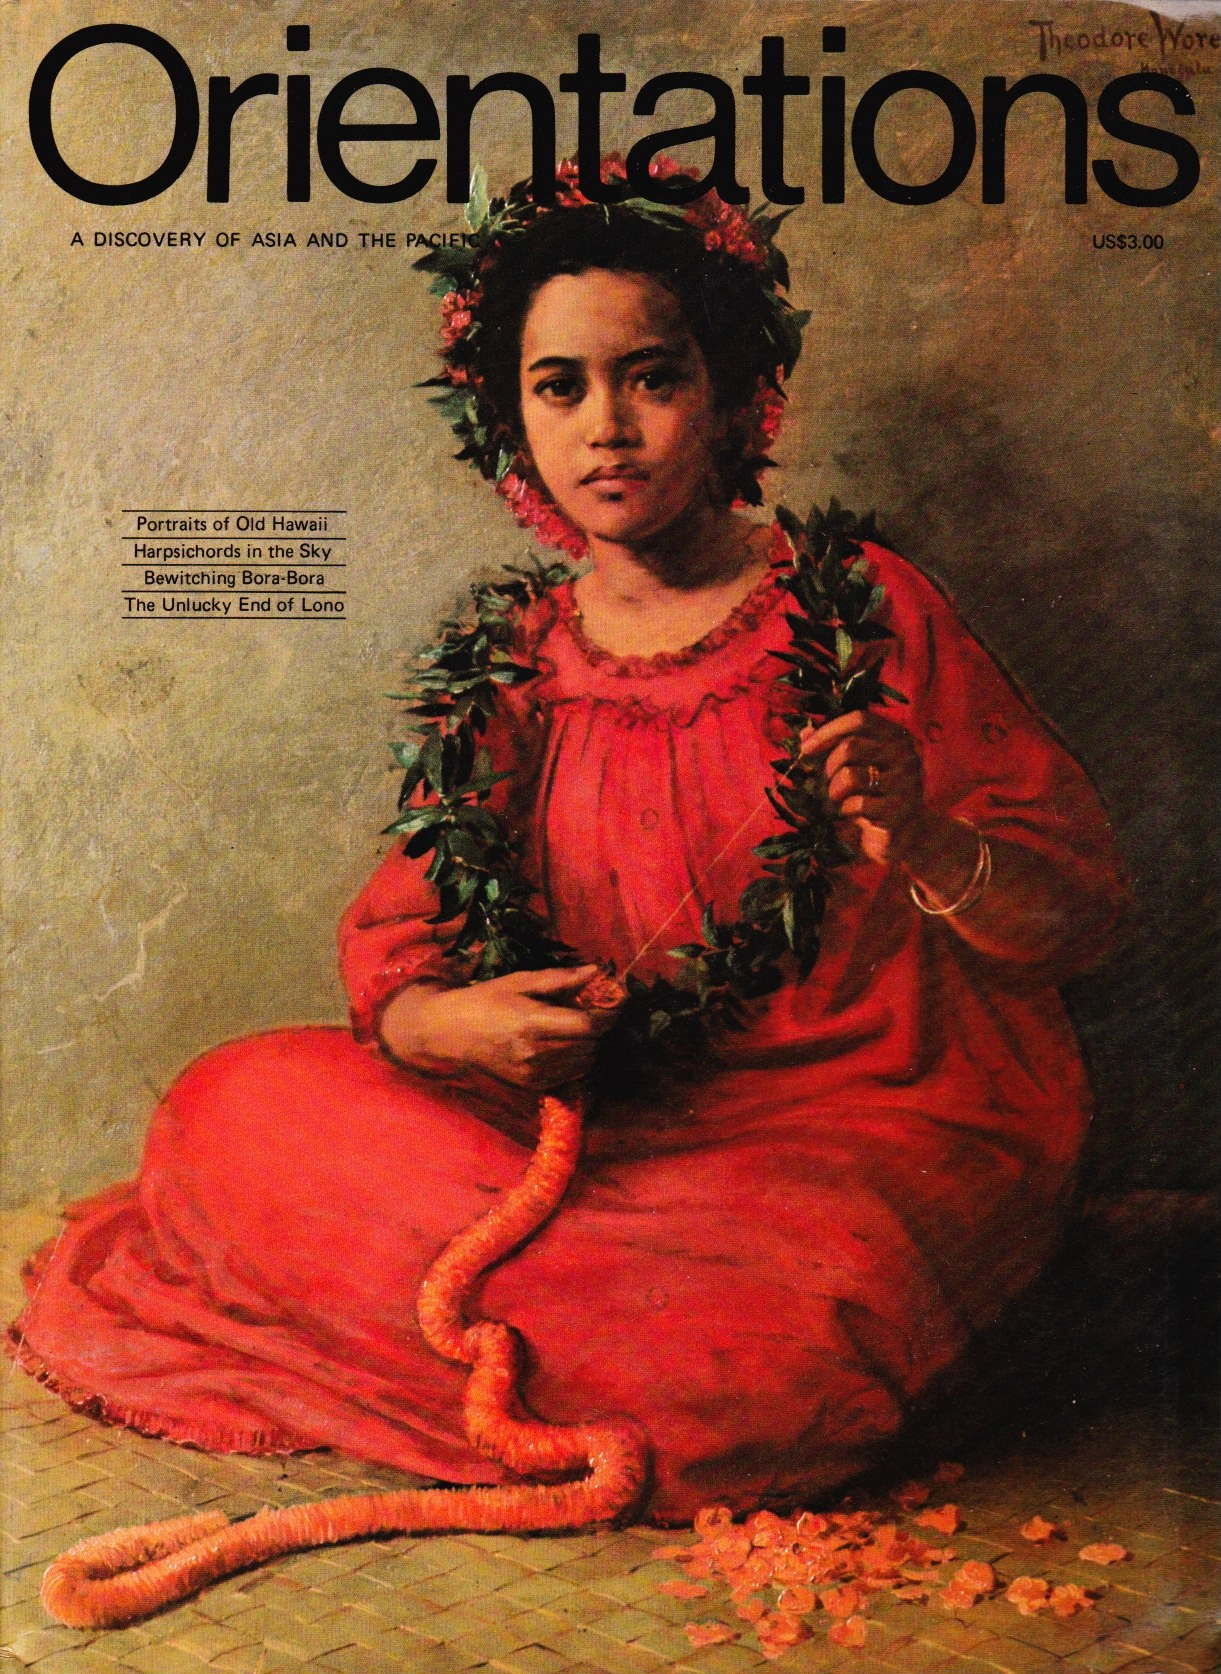 Image for Orientations: a Discovery of Asia and the Pacific Vol. 7, No. 3 (March 1976)